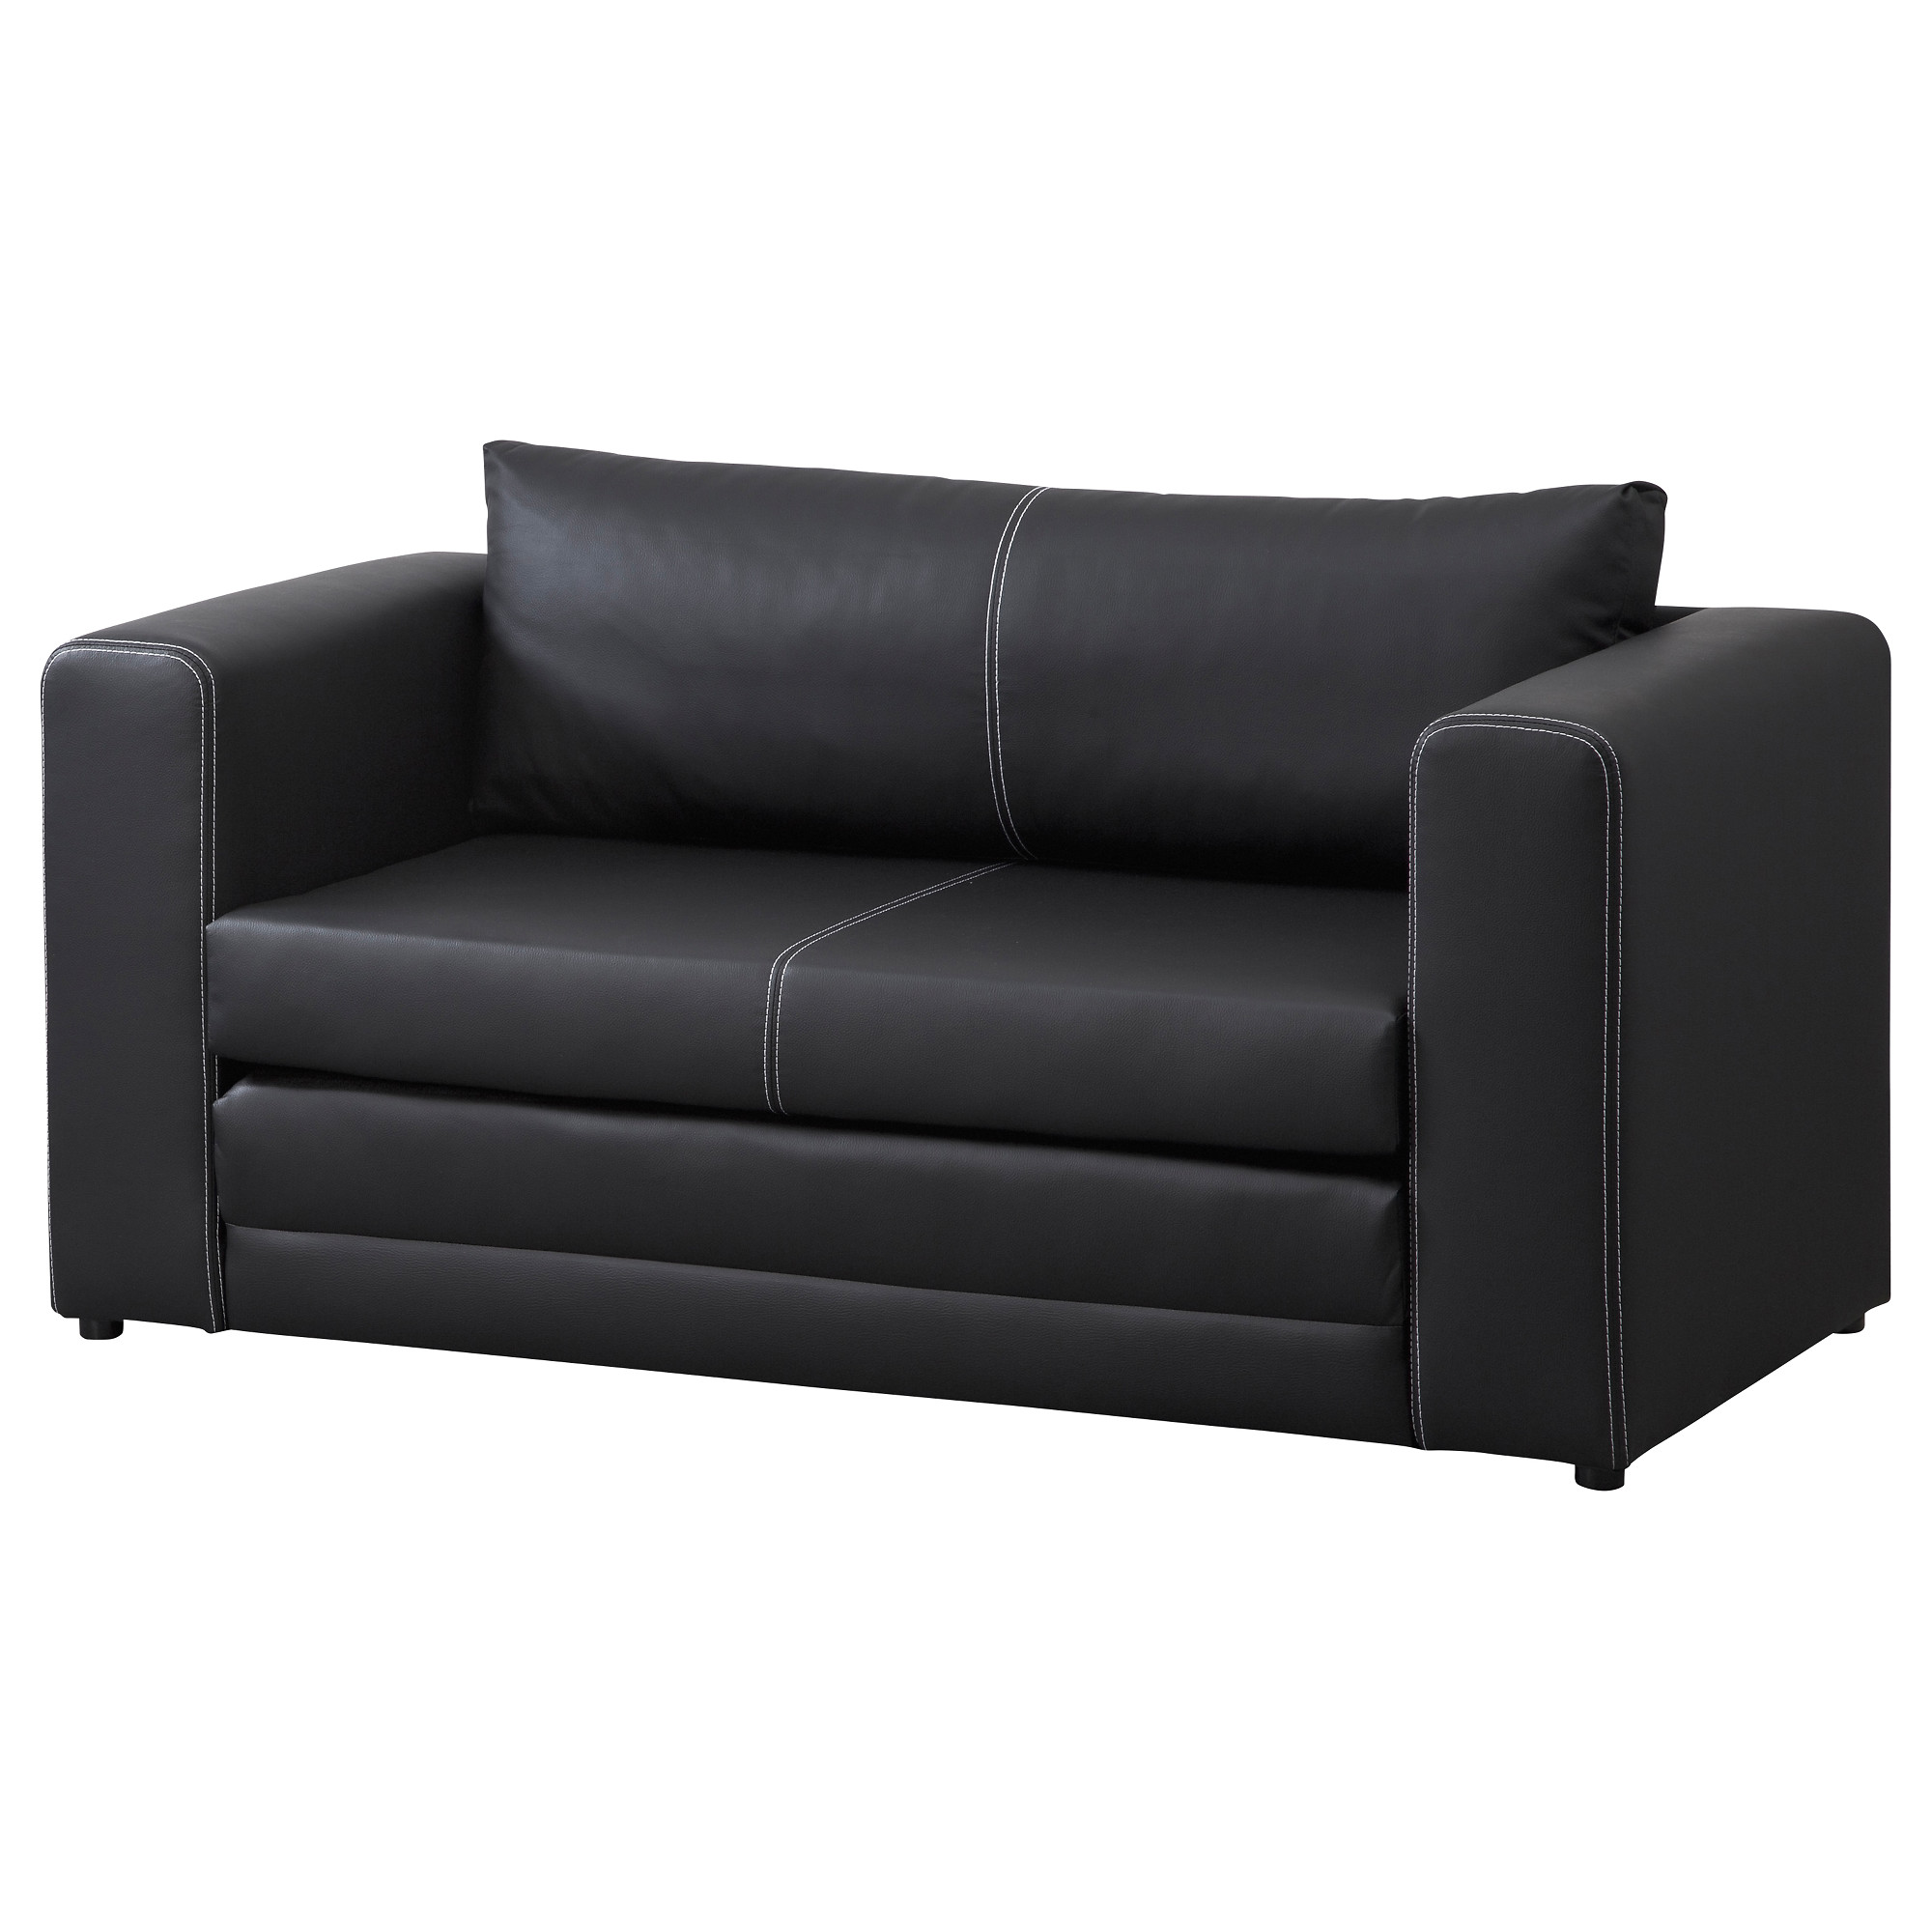 Sofa Ikea Ektorp Dwuosobowa Rozkładana ~ Black Convertible Sofa Sleeper Sofa Beds 10 Second sun co